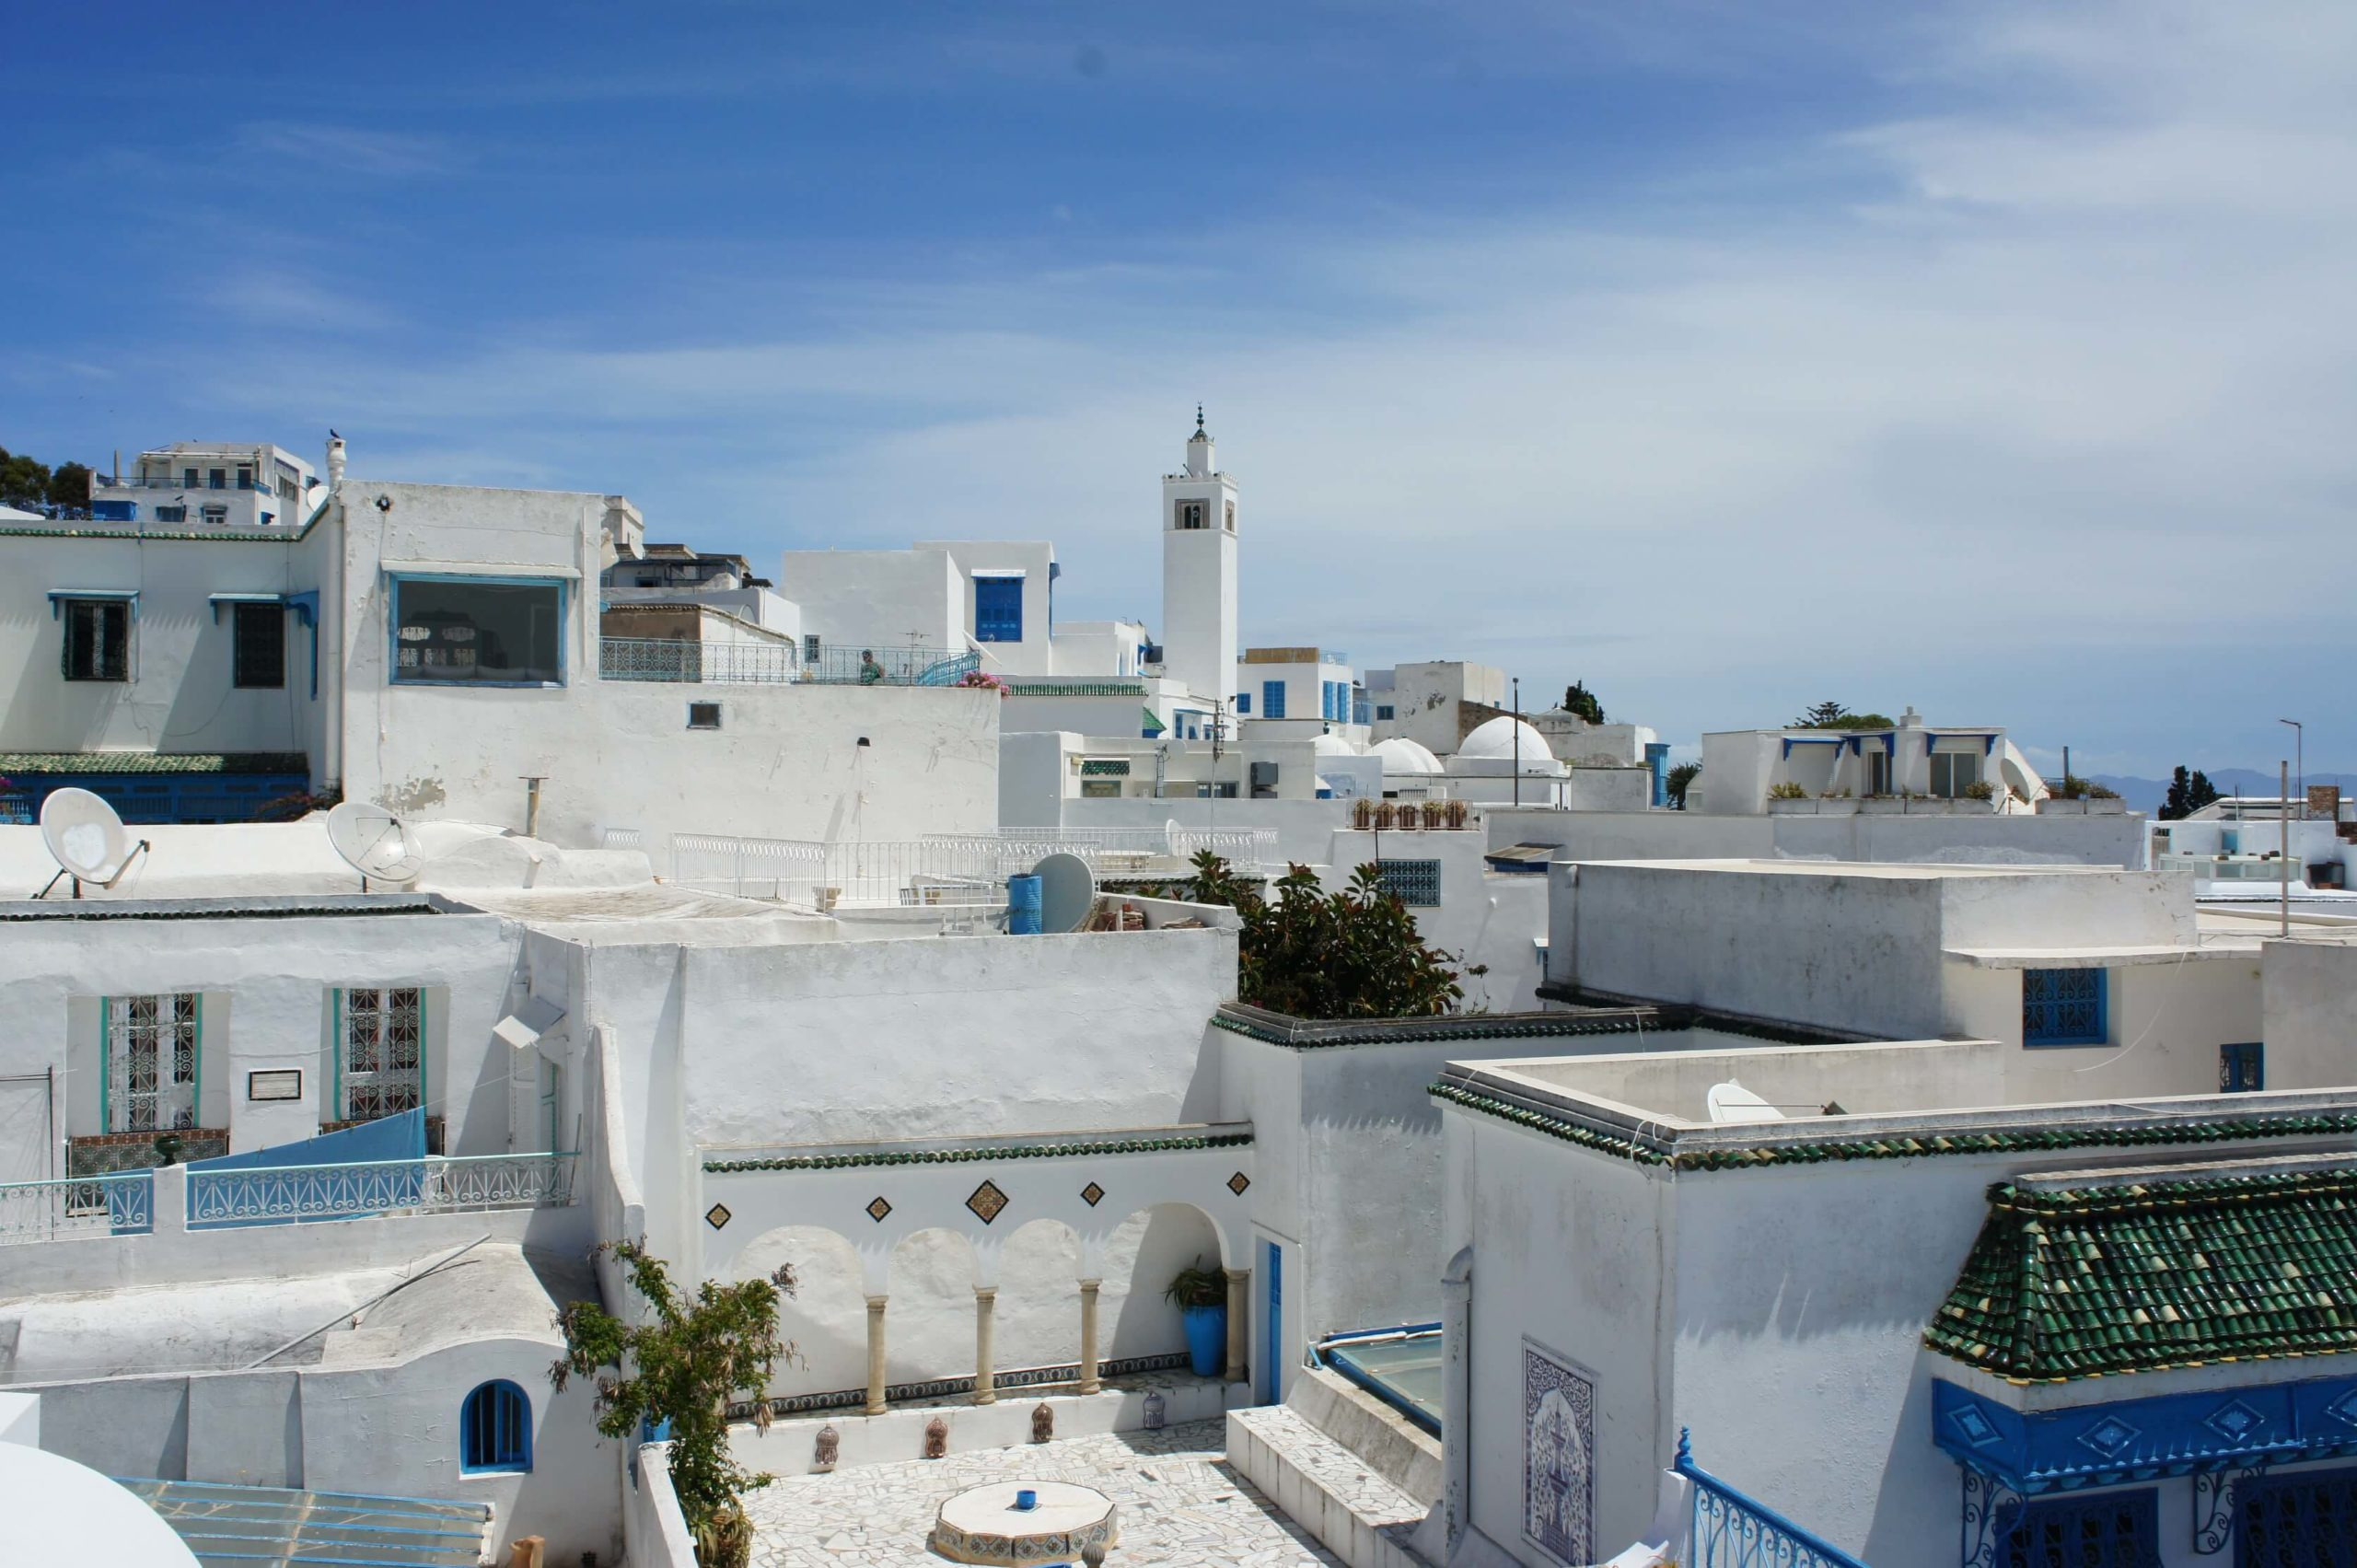 Tunis, Carthage and Sidi Bou Said – Tunisia